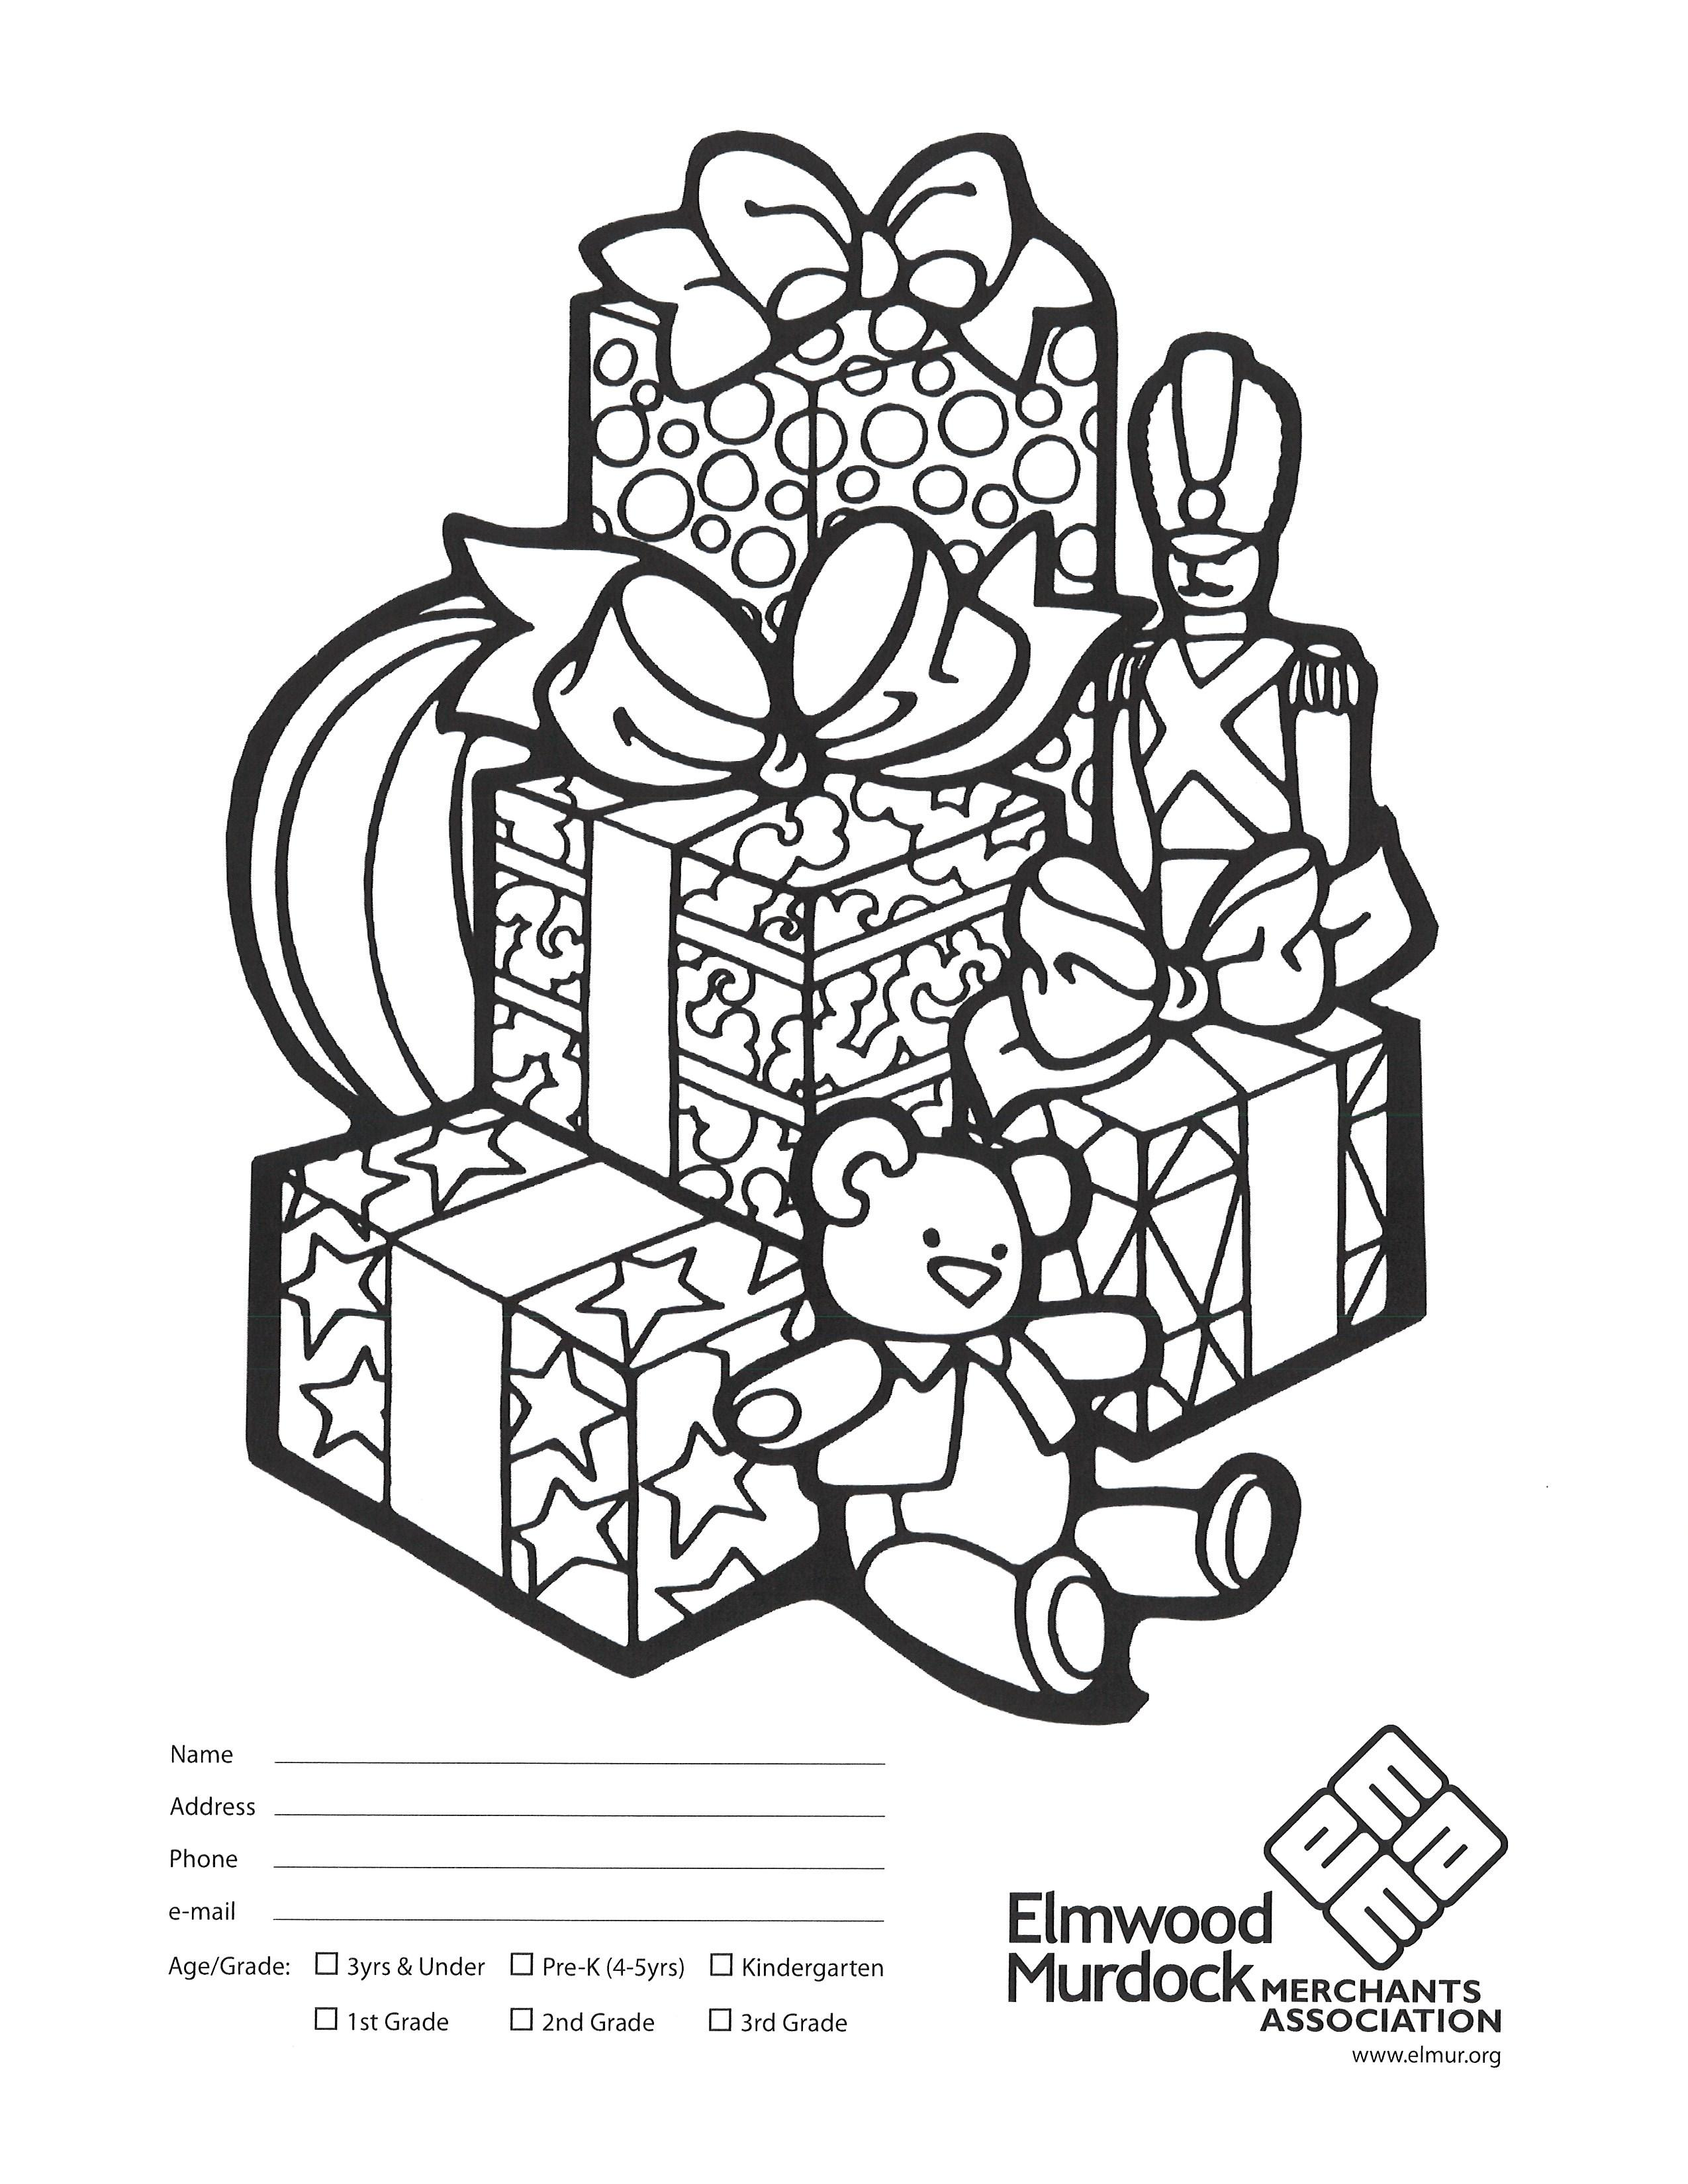 7 Coloring Contest